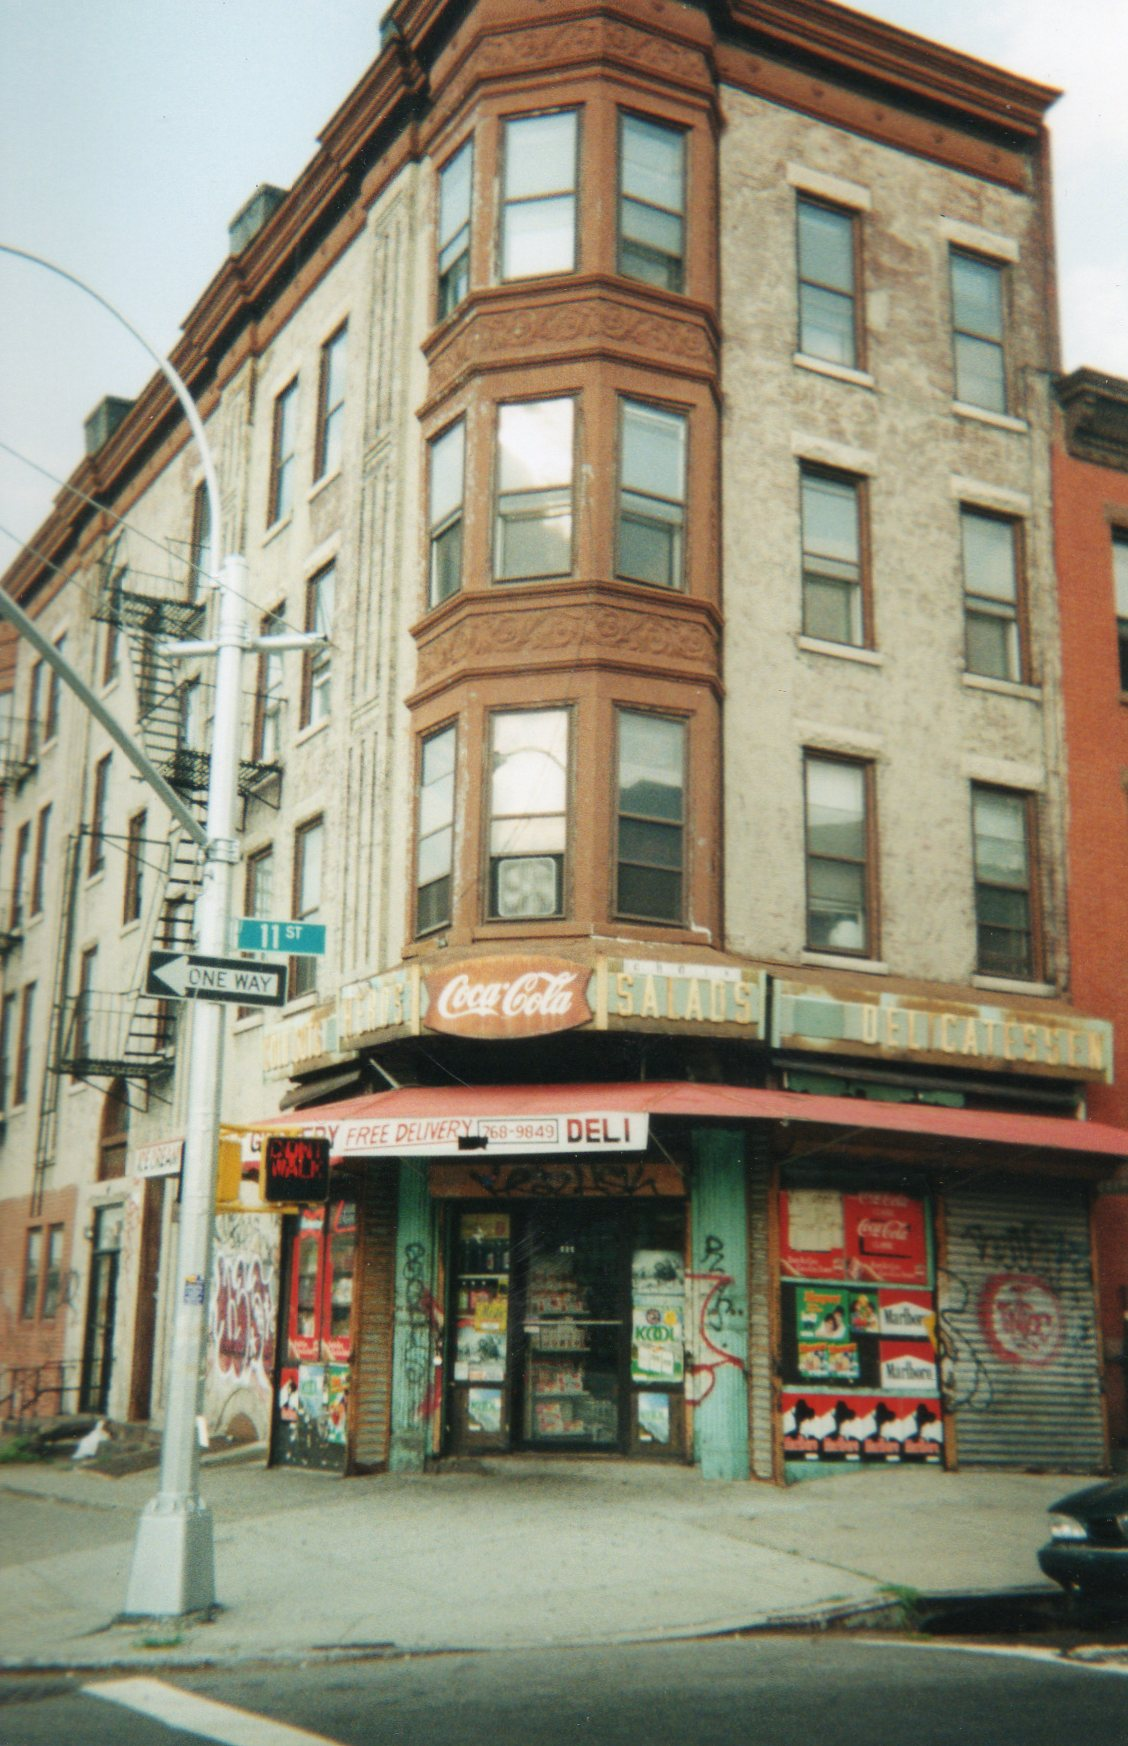 First Brooklyn place, 1996